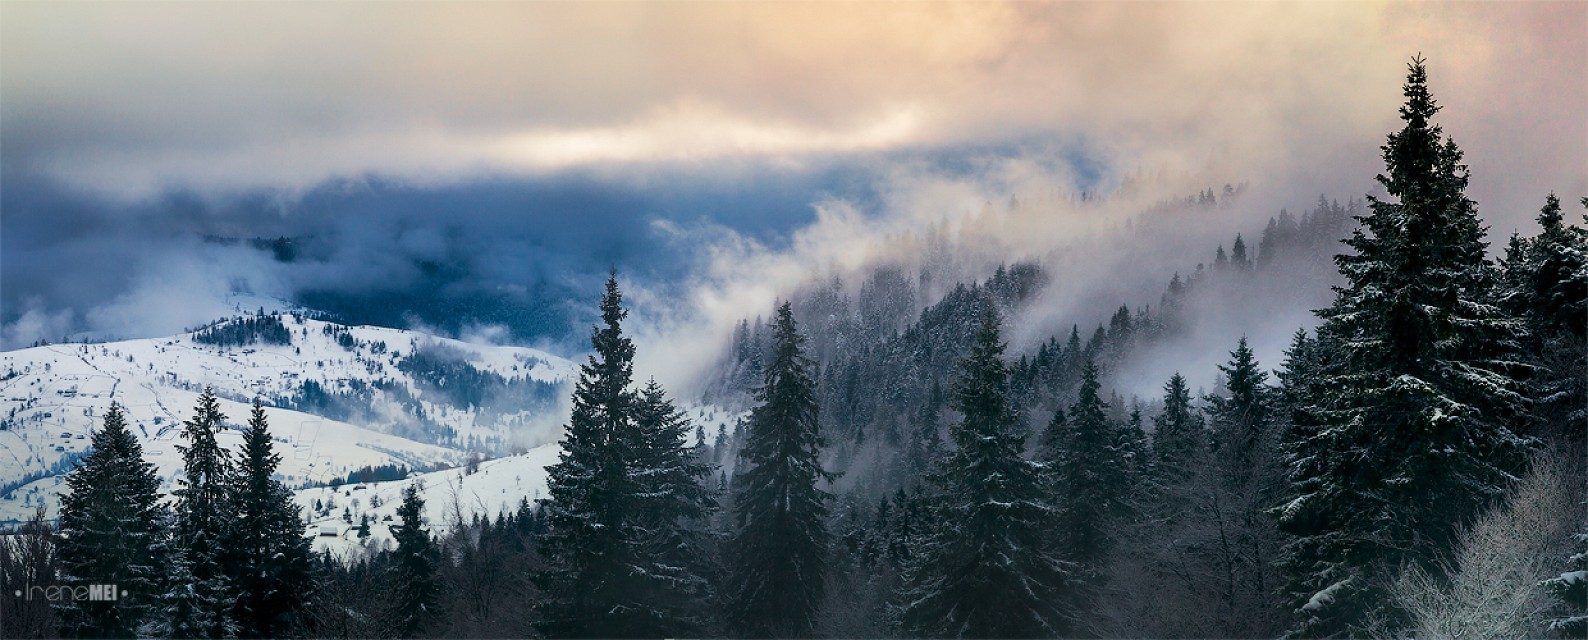 The Carpathians - Ukraine